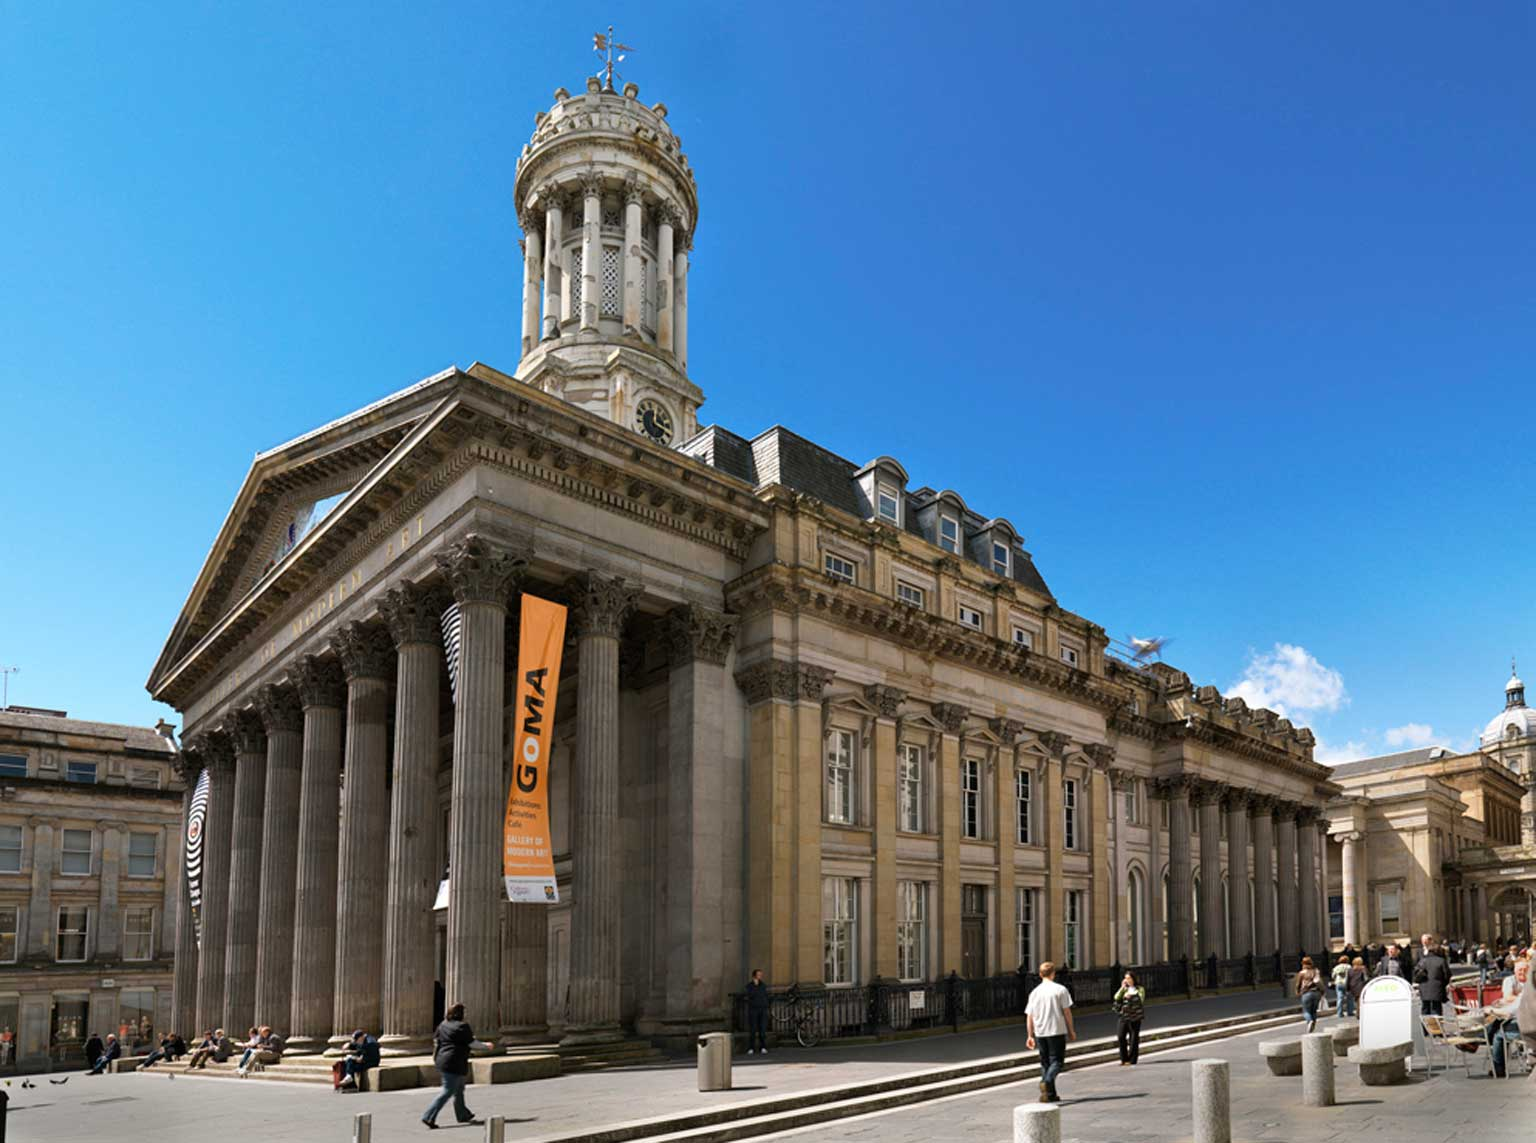 3. Gallery of Modern Art (GoMA), Glasgow - Free to all, 10% off shop purchases with National Art Pass